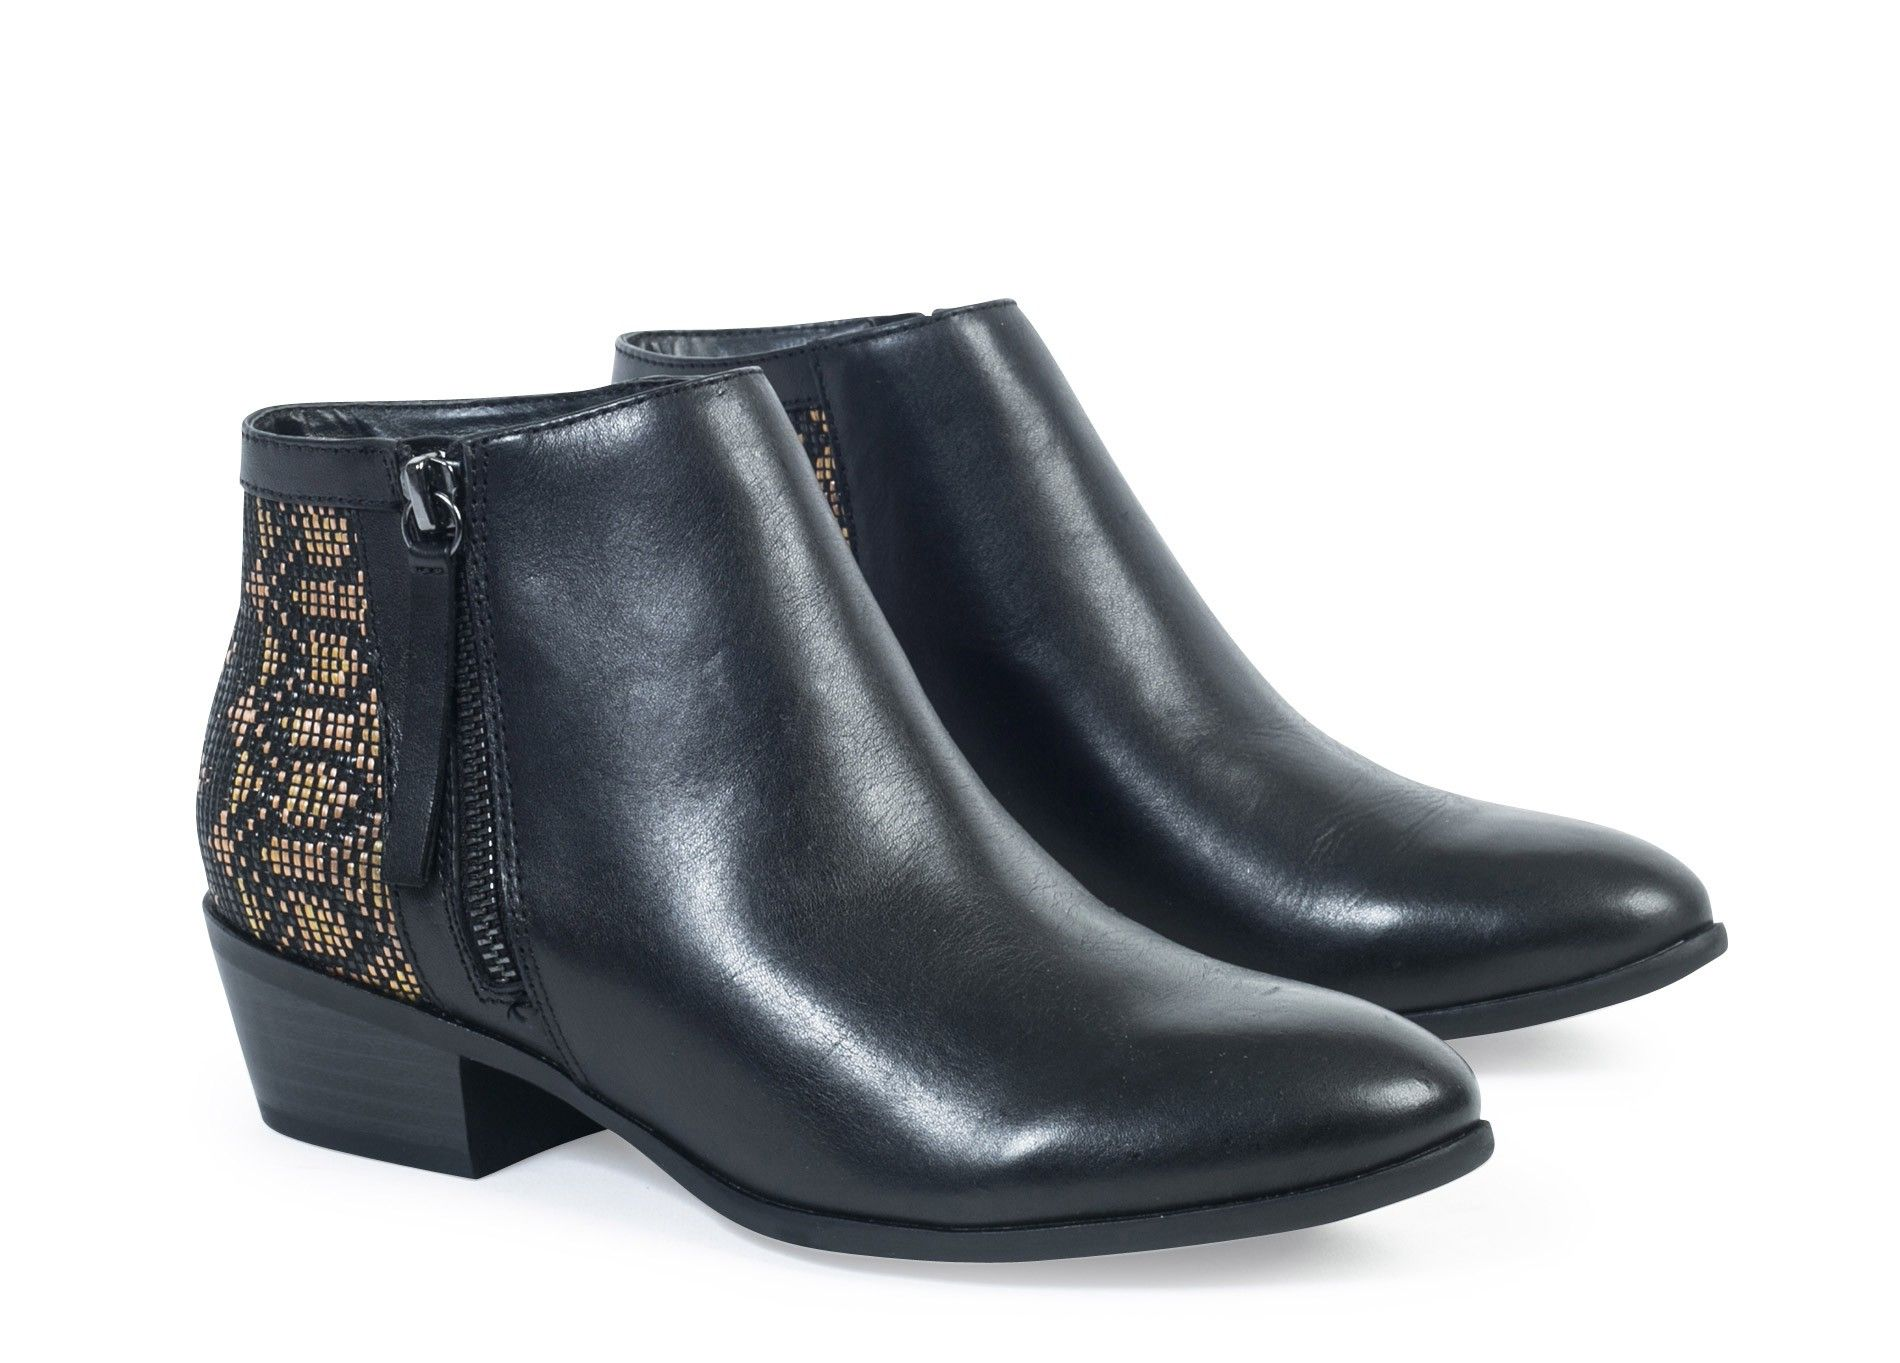 1ac441c187785b #André | BOOTS LILLY | #mode #femme #shoes #chaussure #fashion #shopping  #lifestylemode